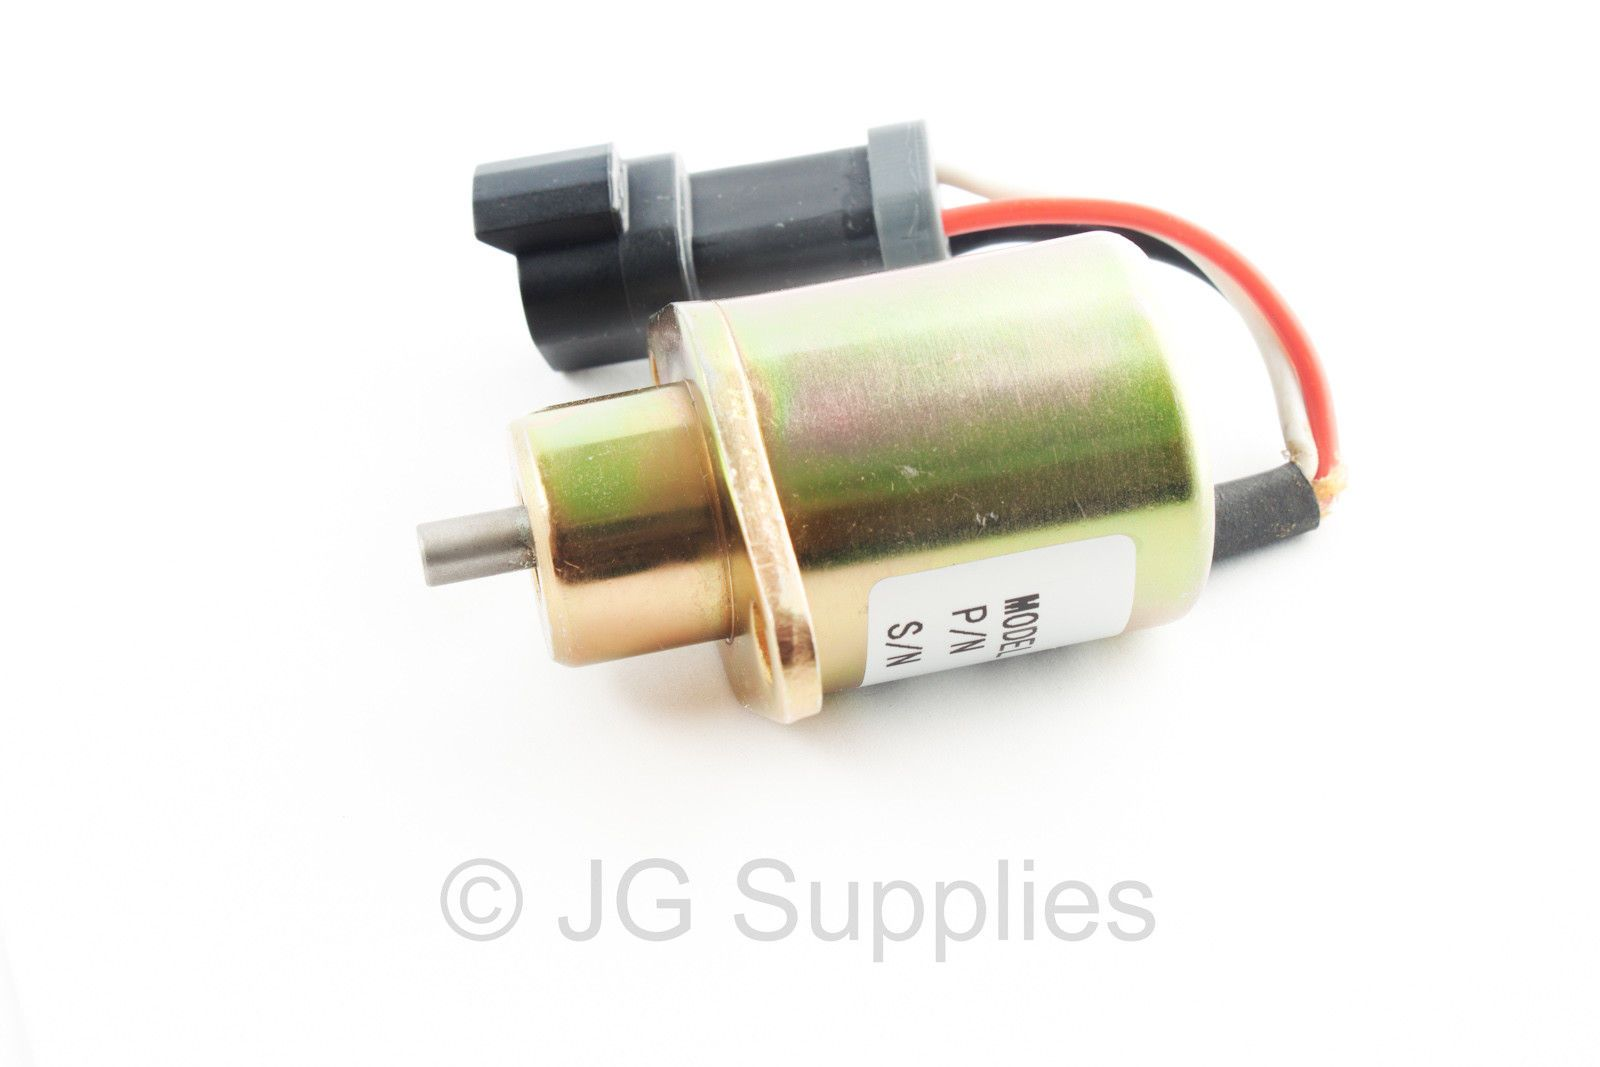 Shut off solenoid 2848A278 Perkins Marine UB704 Caterpillar 246 Skid Ste  2848A27 - 372295210820